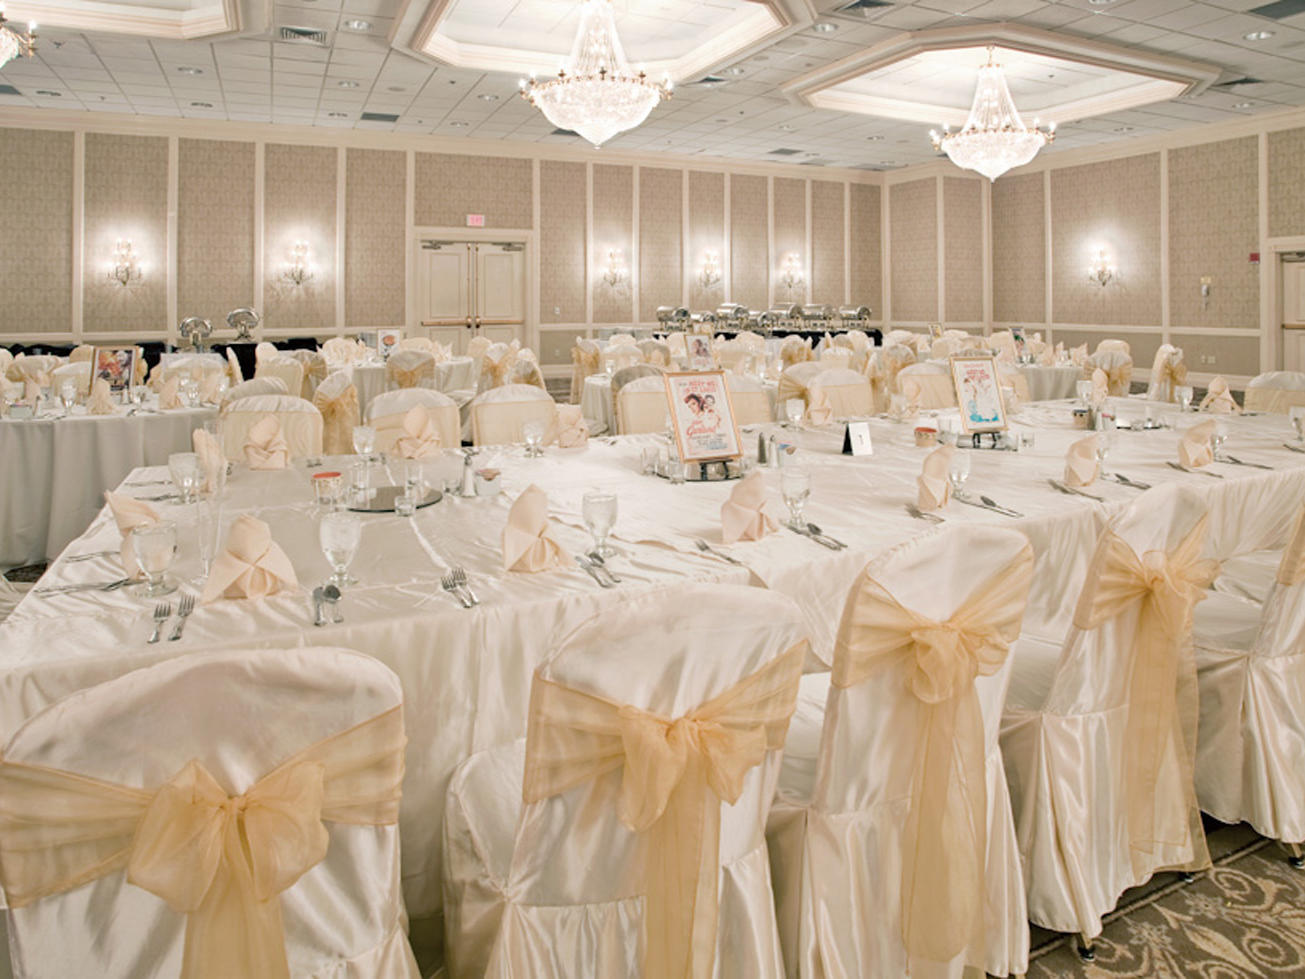 decorated tables and chairs in a ballroom